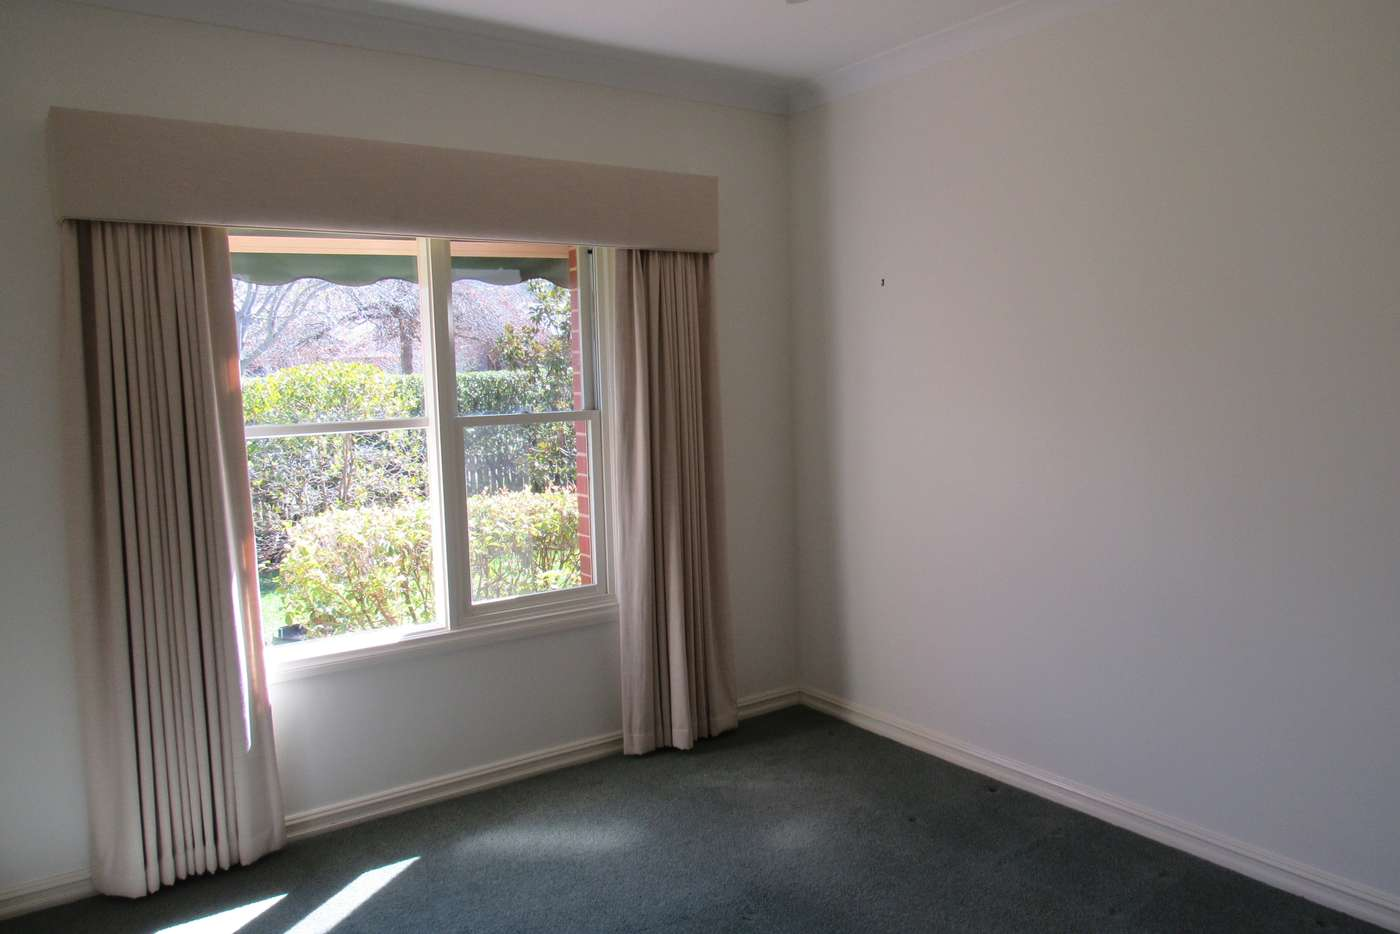 Seventh view of Homely townhouse listing, Unit 1/670 Jones St, Albury NSW 2640